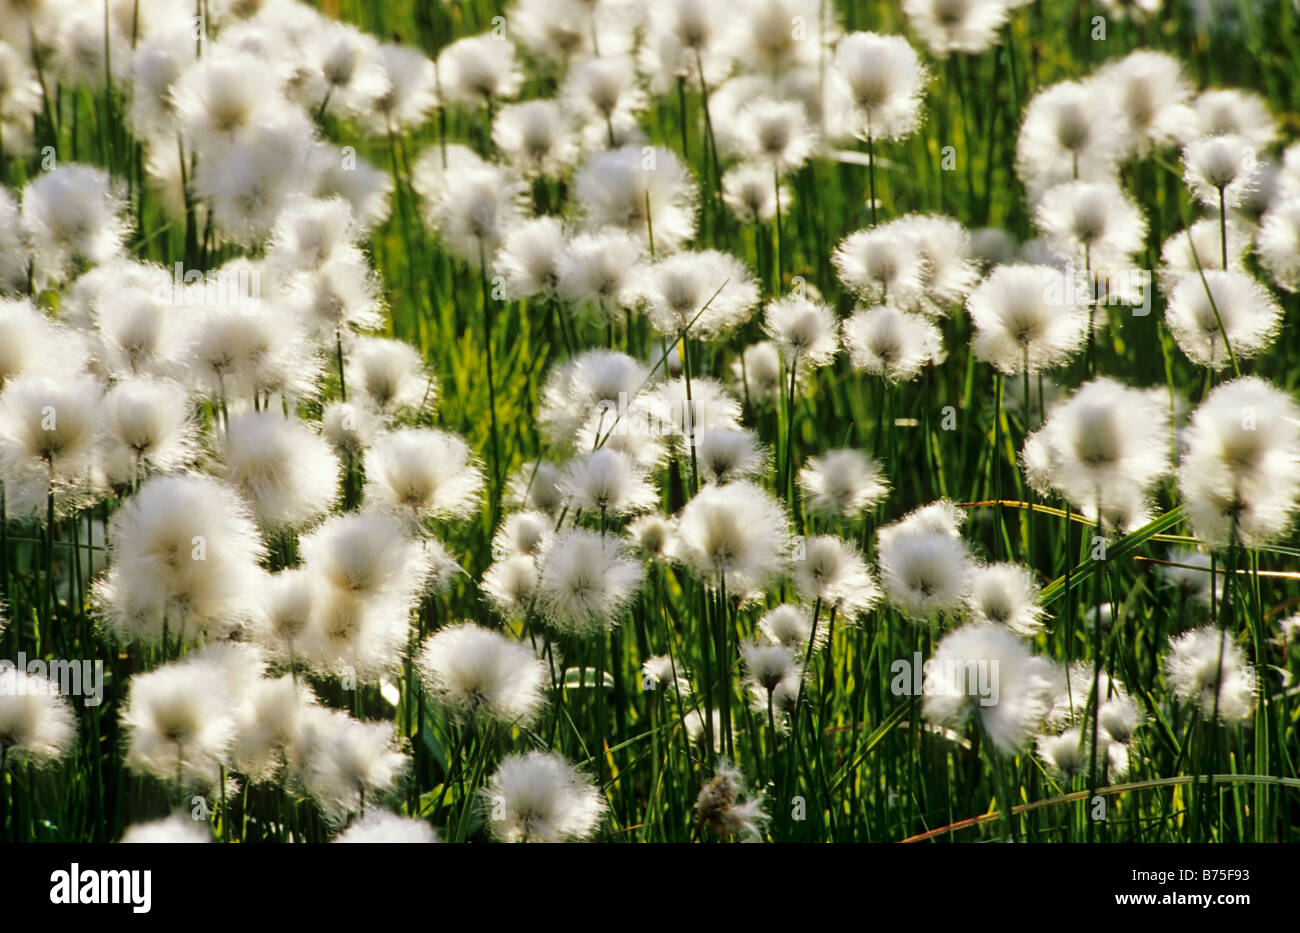 cotton grass in lapland sweden - Stock Image